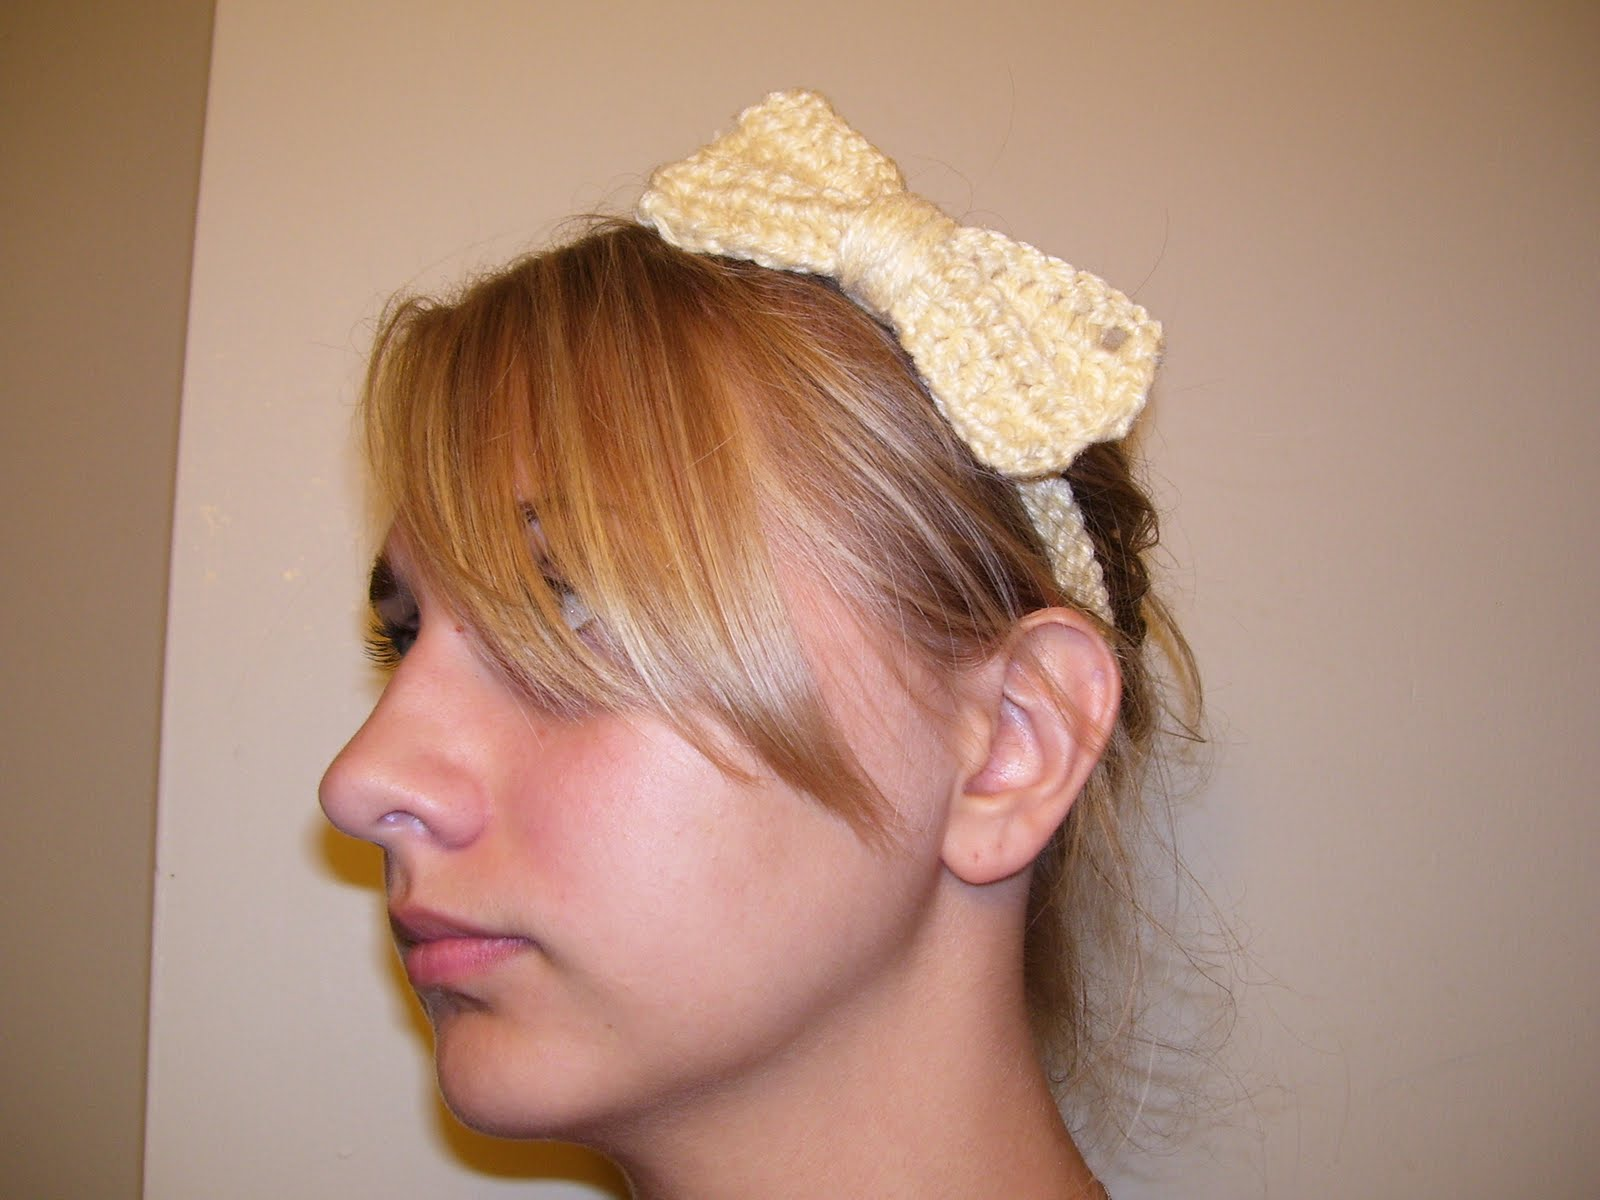 Crochet Patterns Hair : Teacher. Sewer. Knitter. Blogger.: Cute Crochet Hair Bow